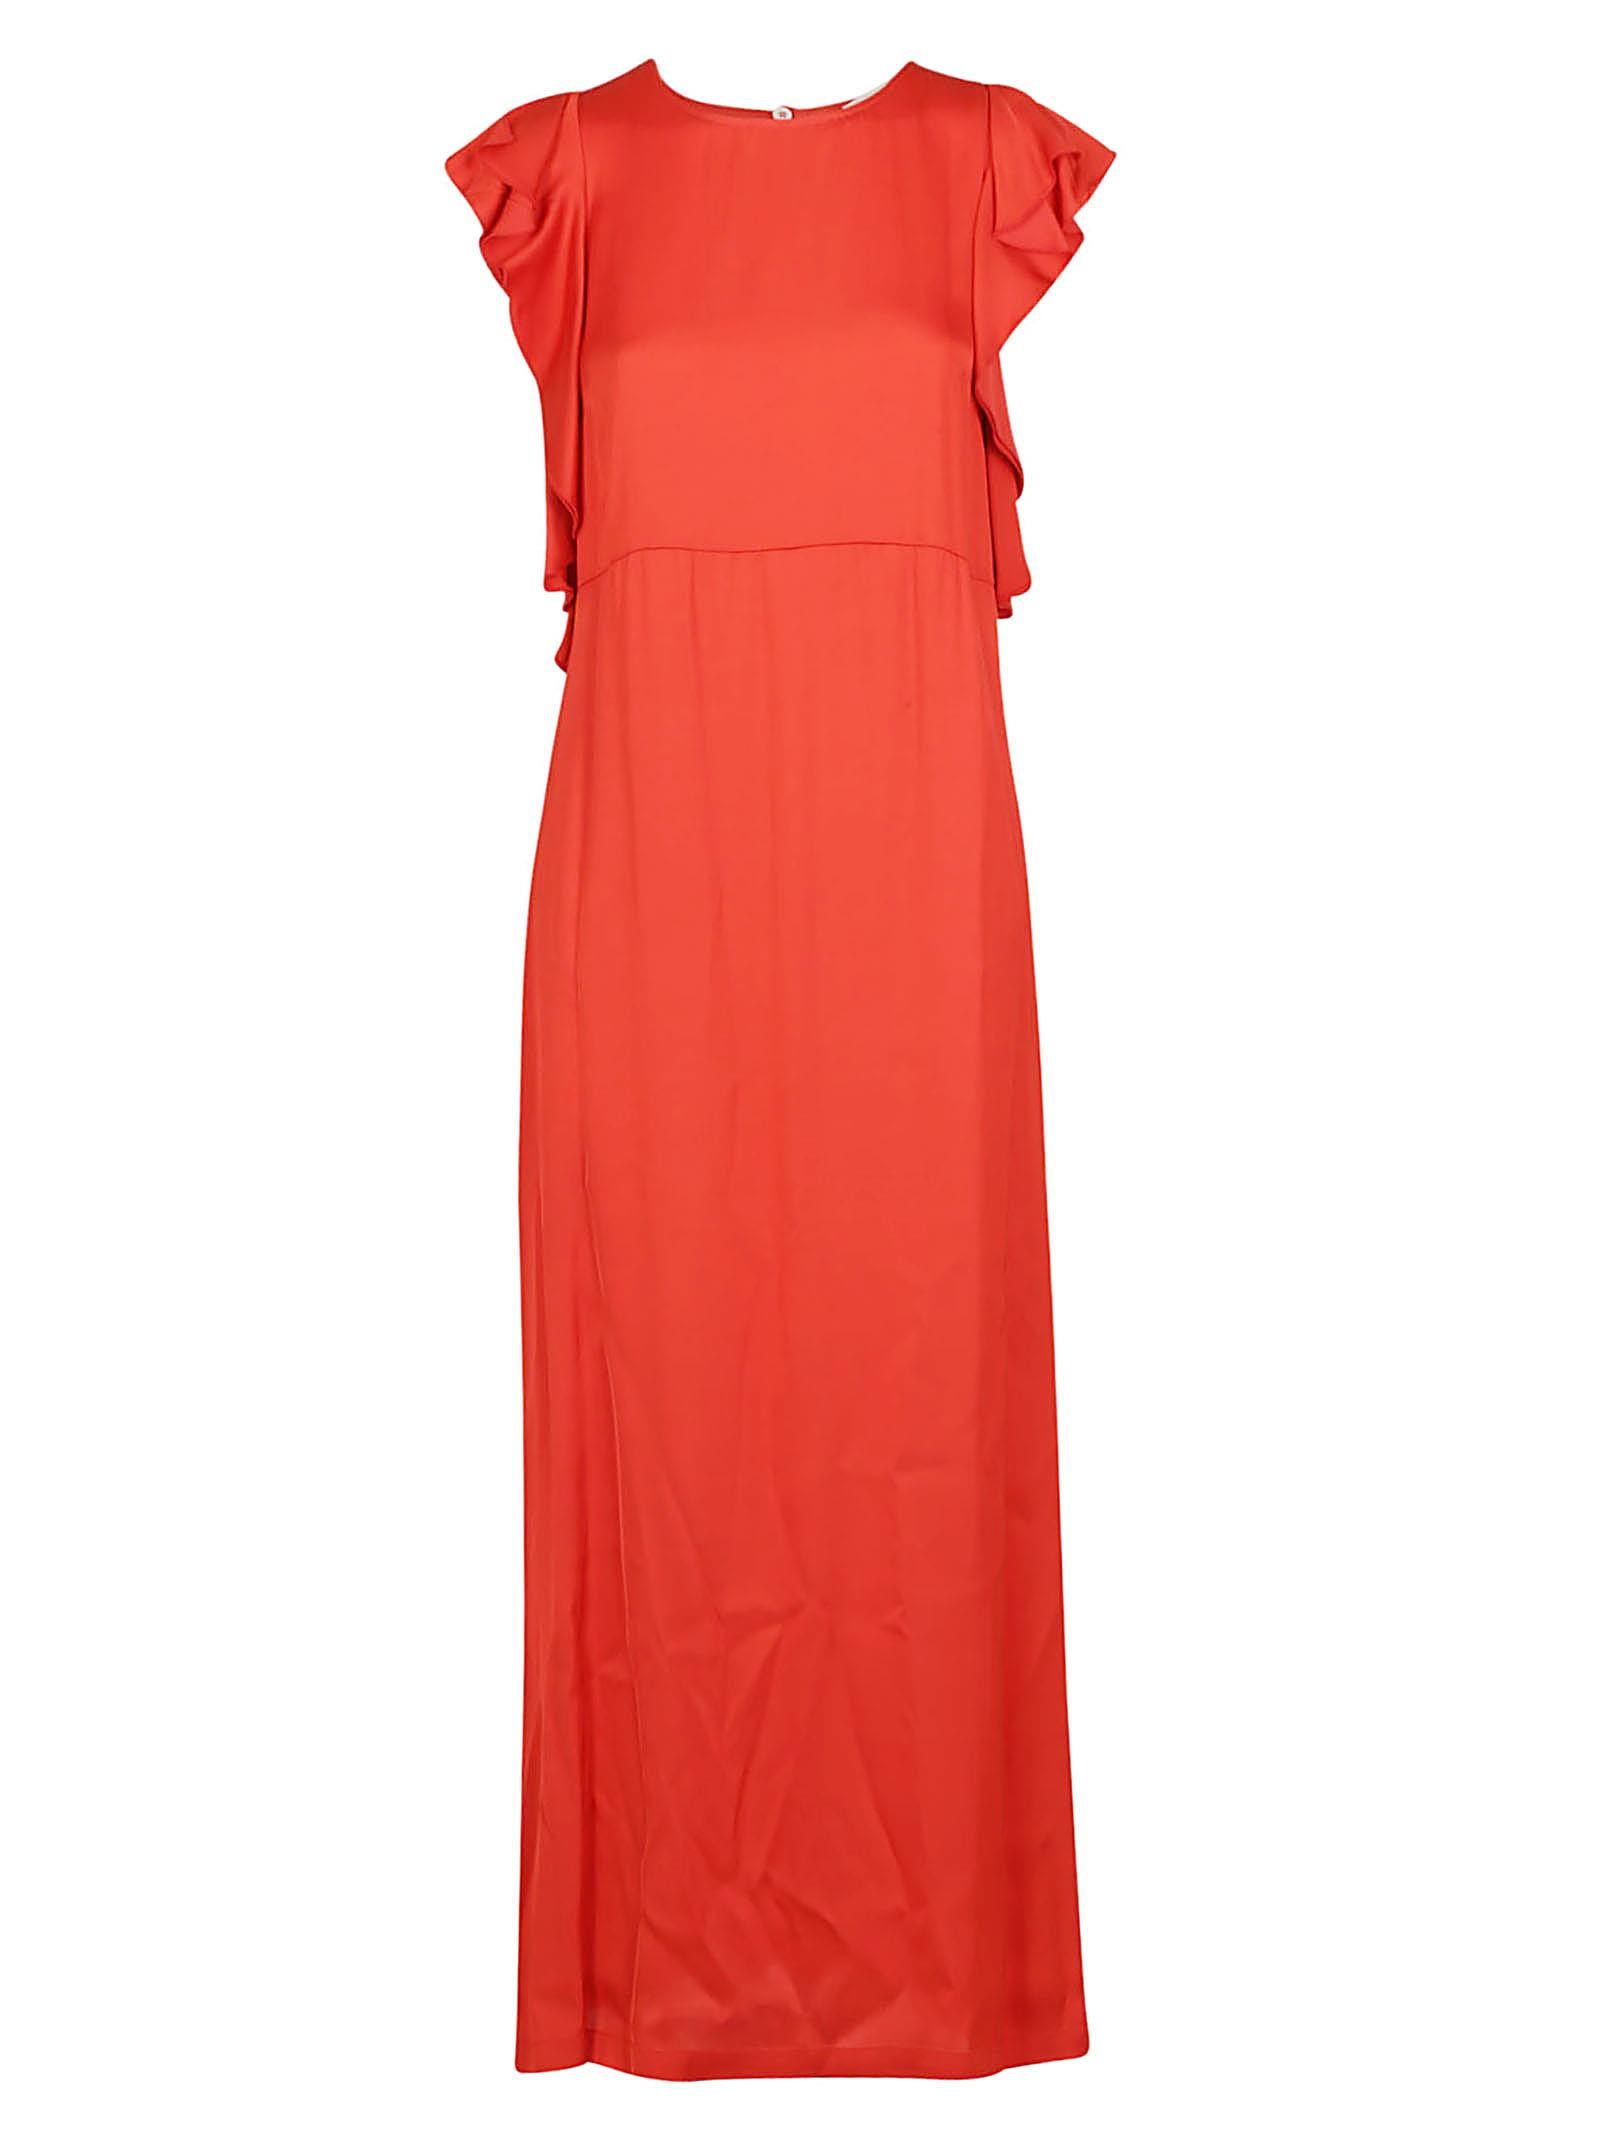 Buy SEMICOUTURE Semicouture Ruffled Sleeve Maxi Dress online, shop SEMICOUTURE with free shipping